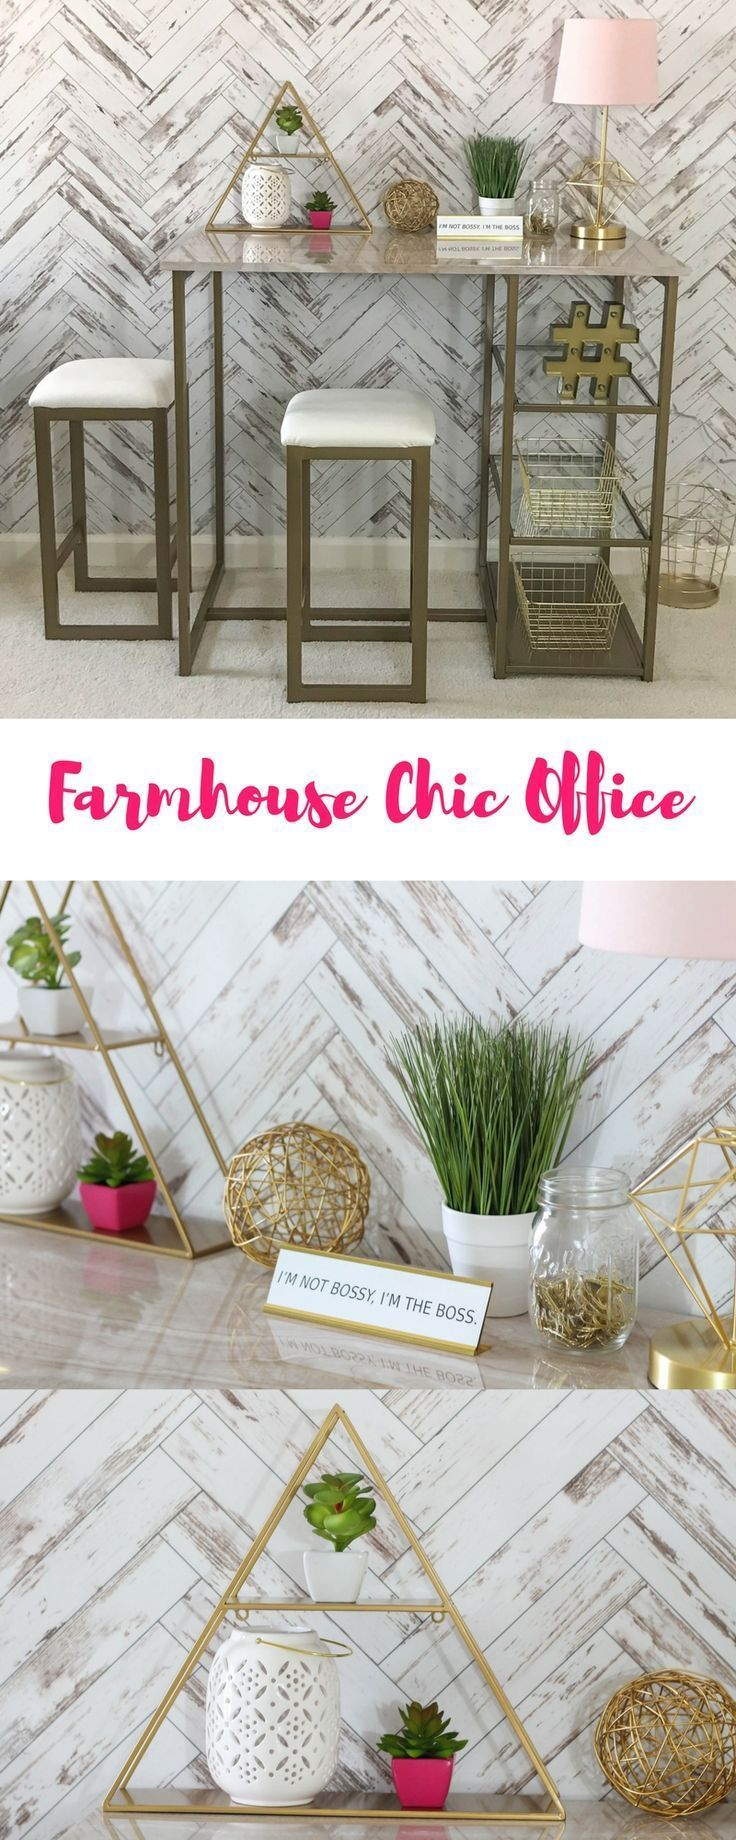 Farmhouse chic home office space modern farmhouse decor removeable wallpaper chevron wood wall